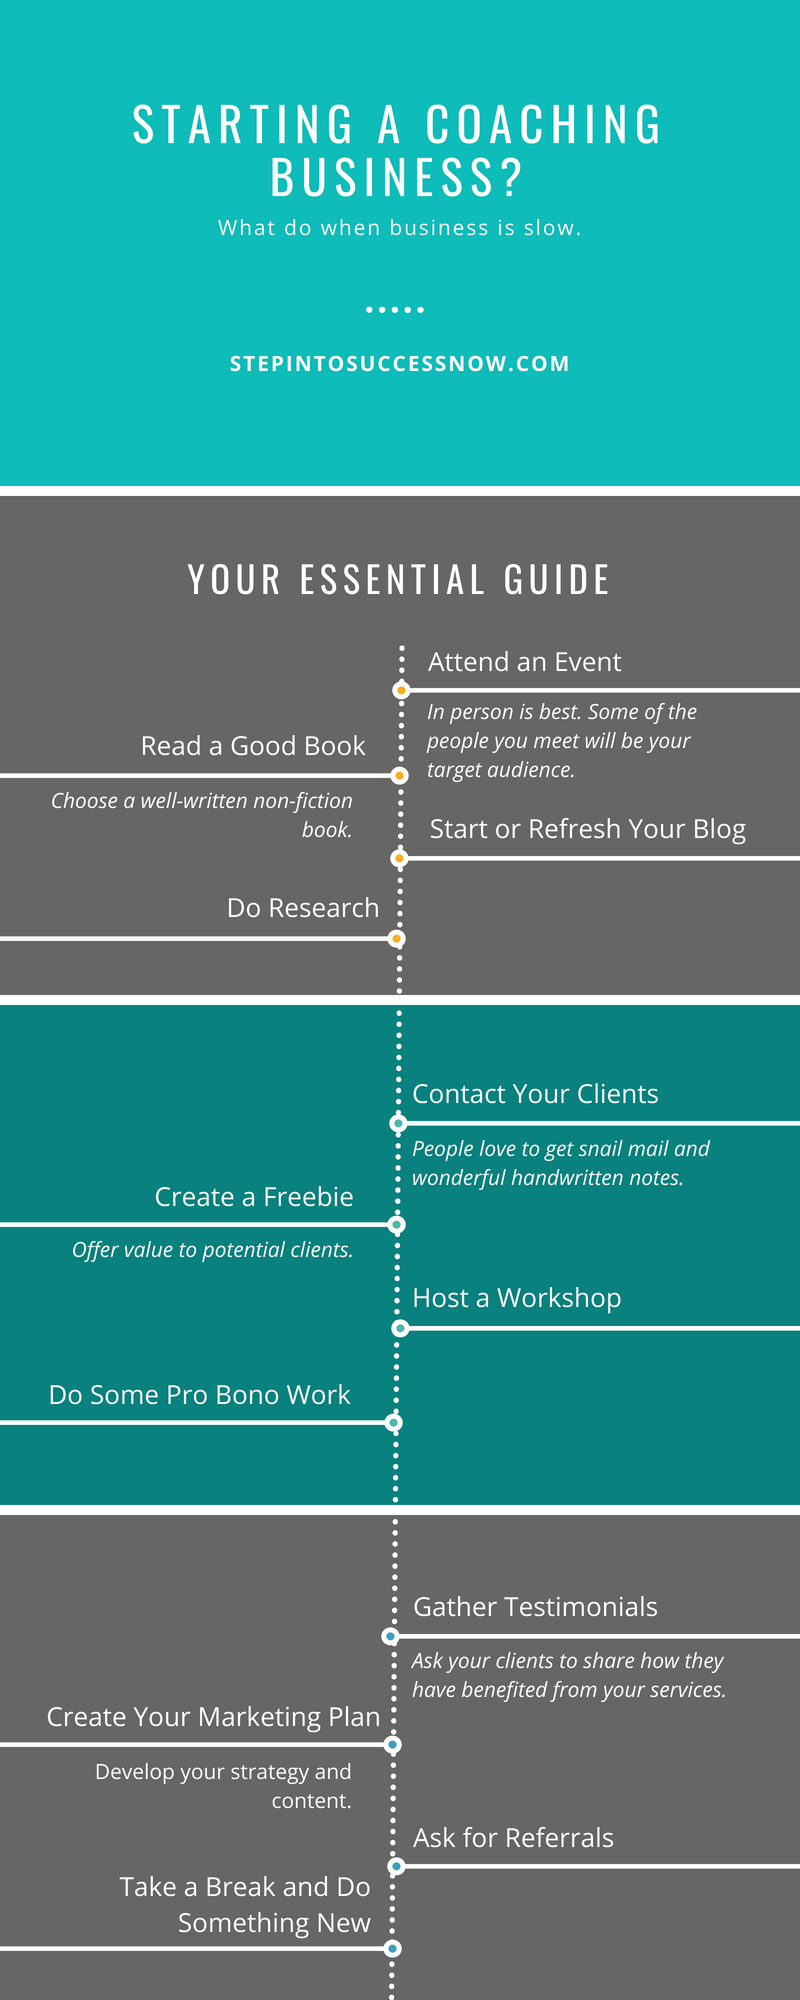 Review, research and refresh your website and blog when ...